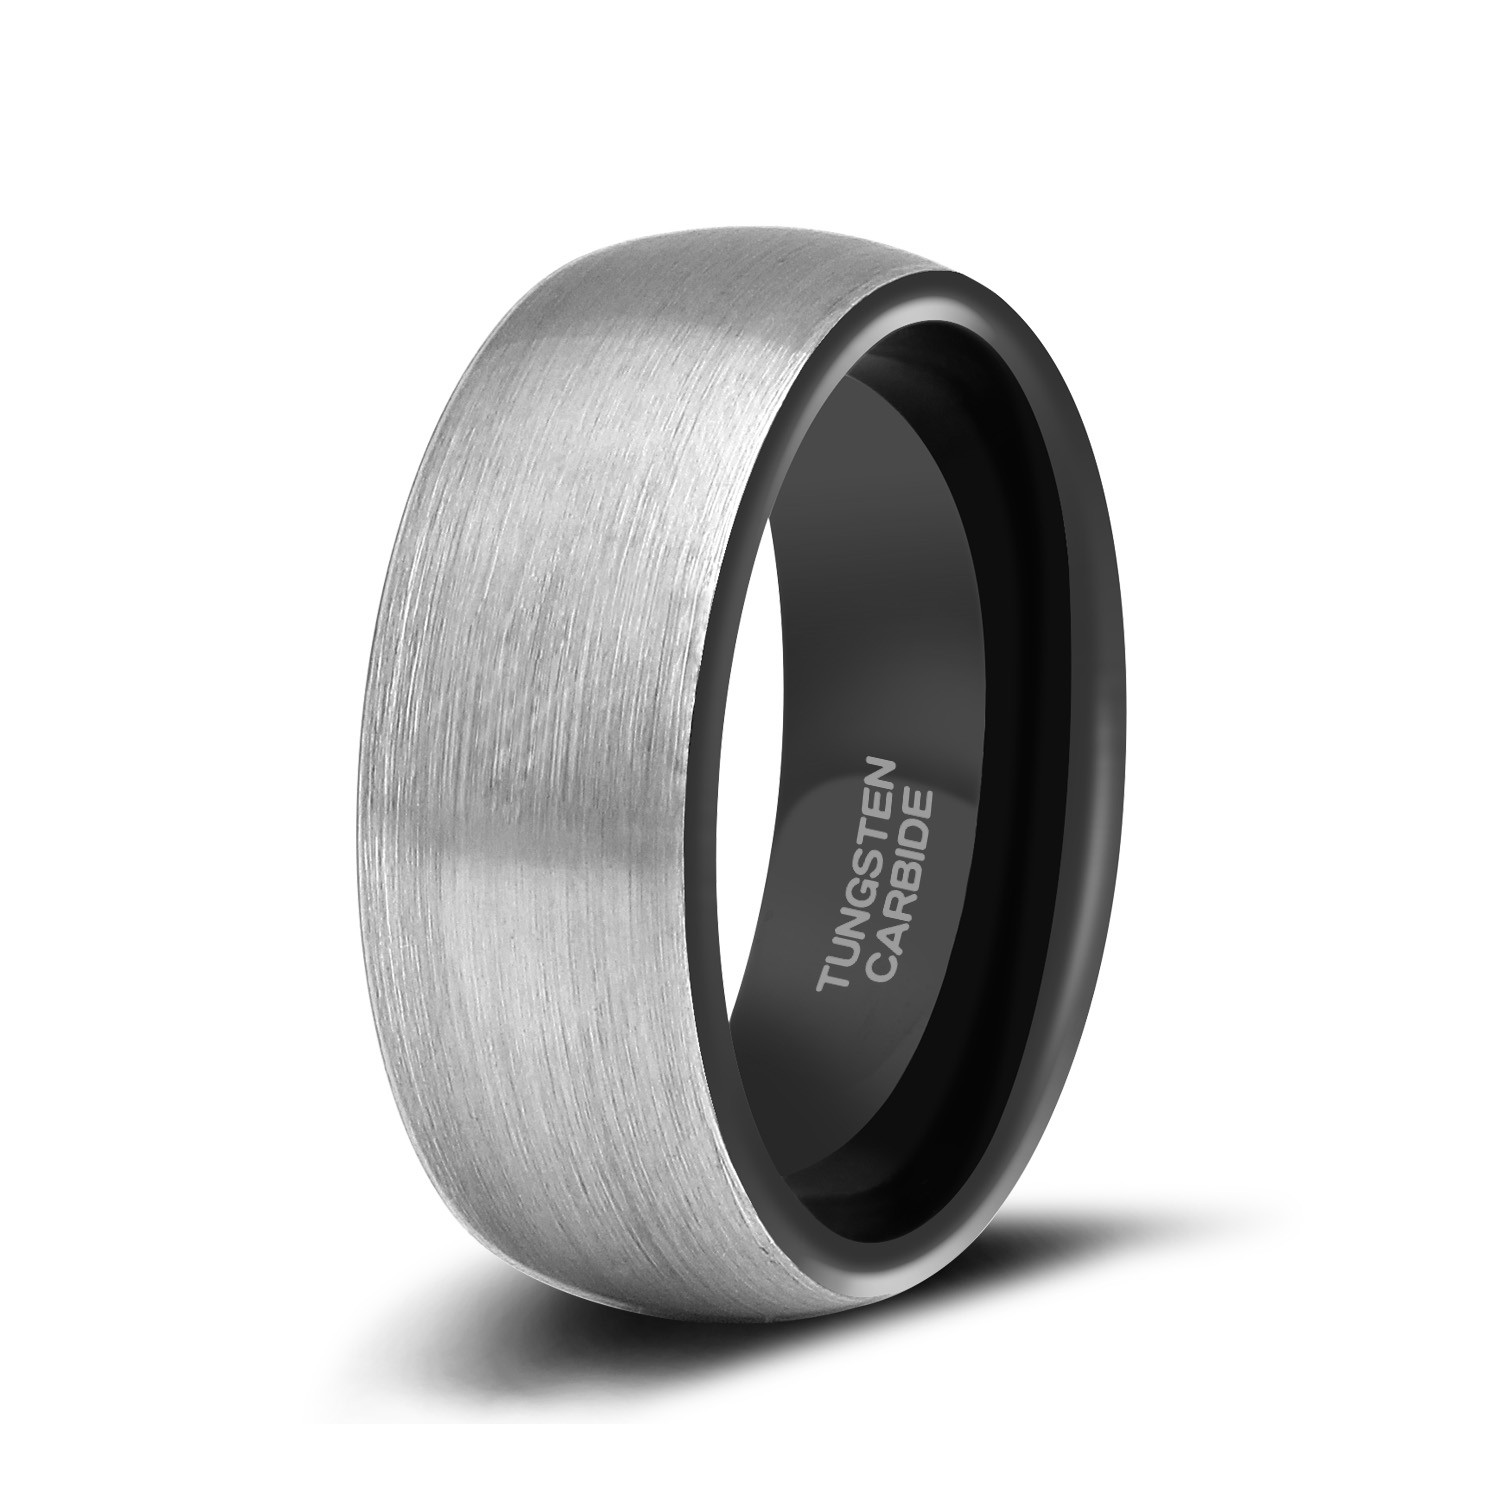 Black And Silver Tungsten Rings3: Black Metal Wedding Bands At Reisefeber.org